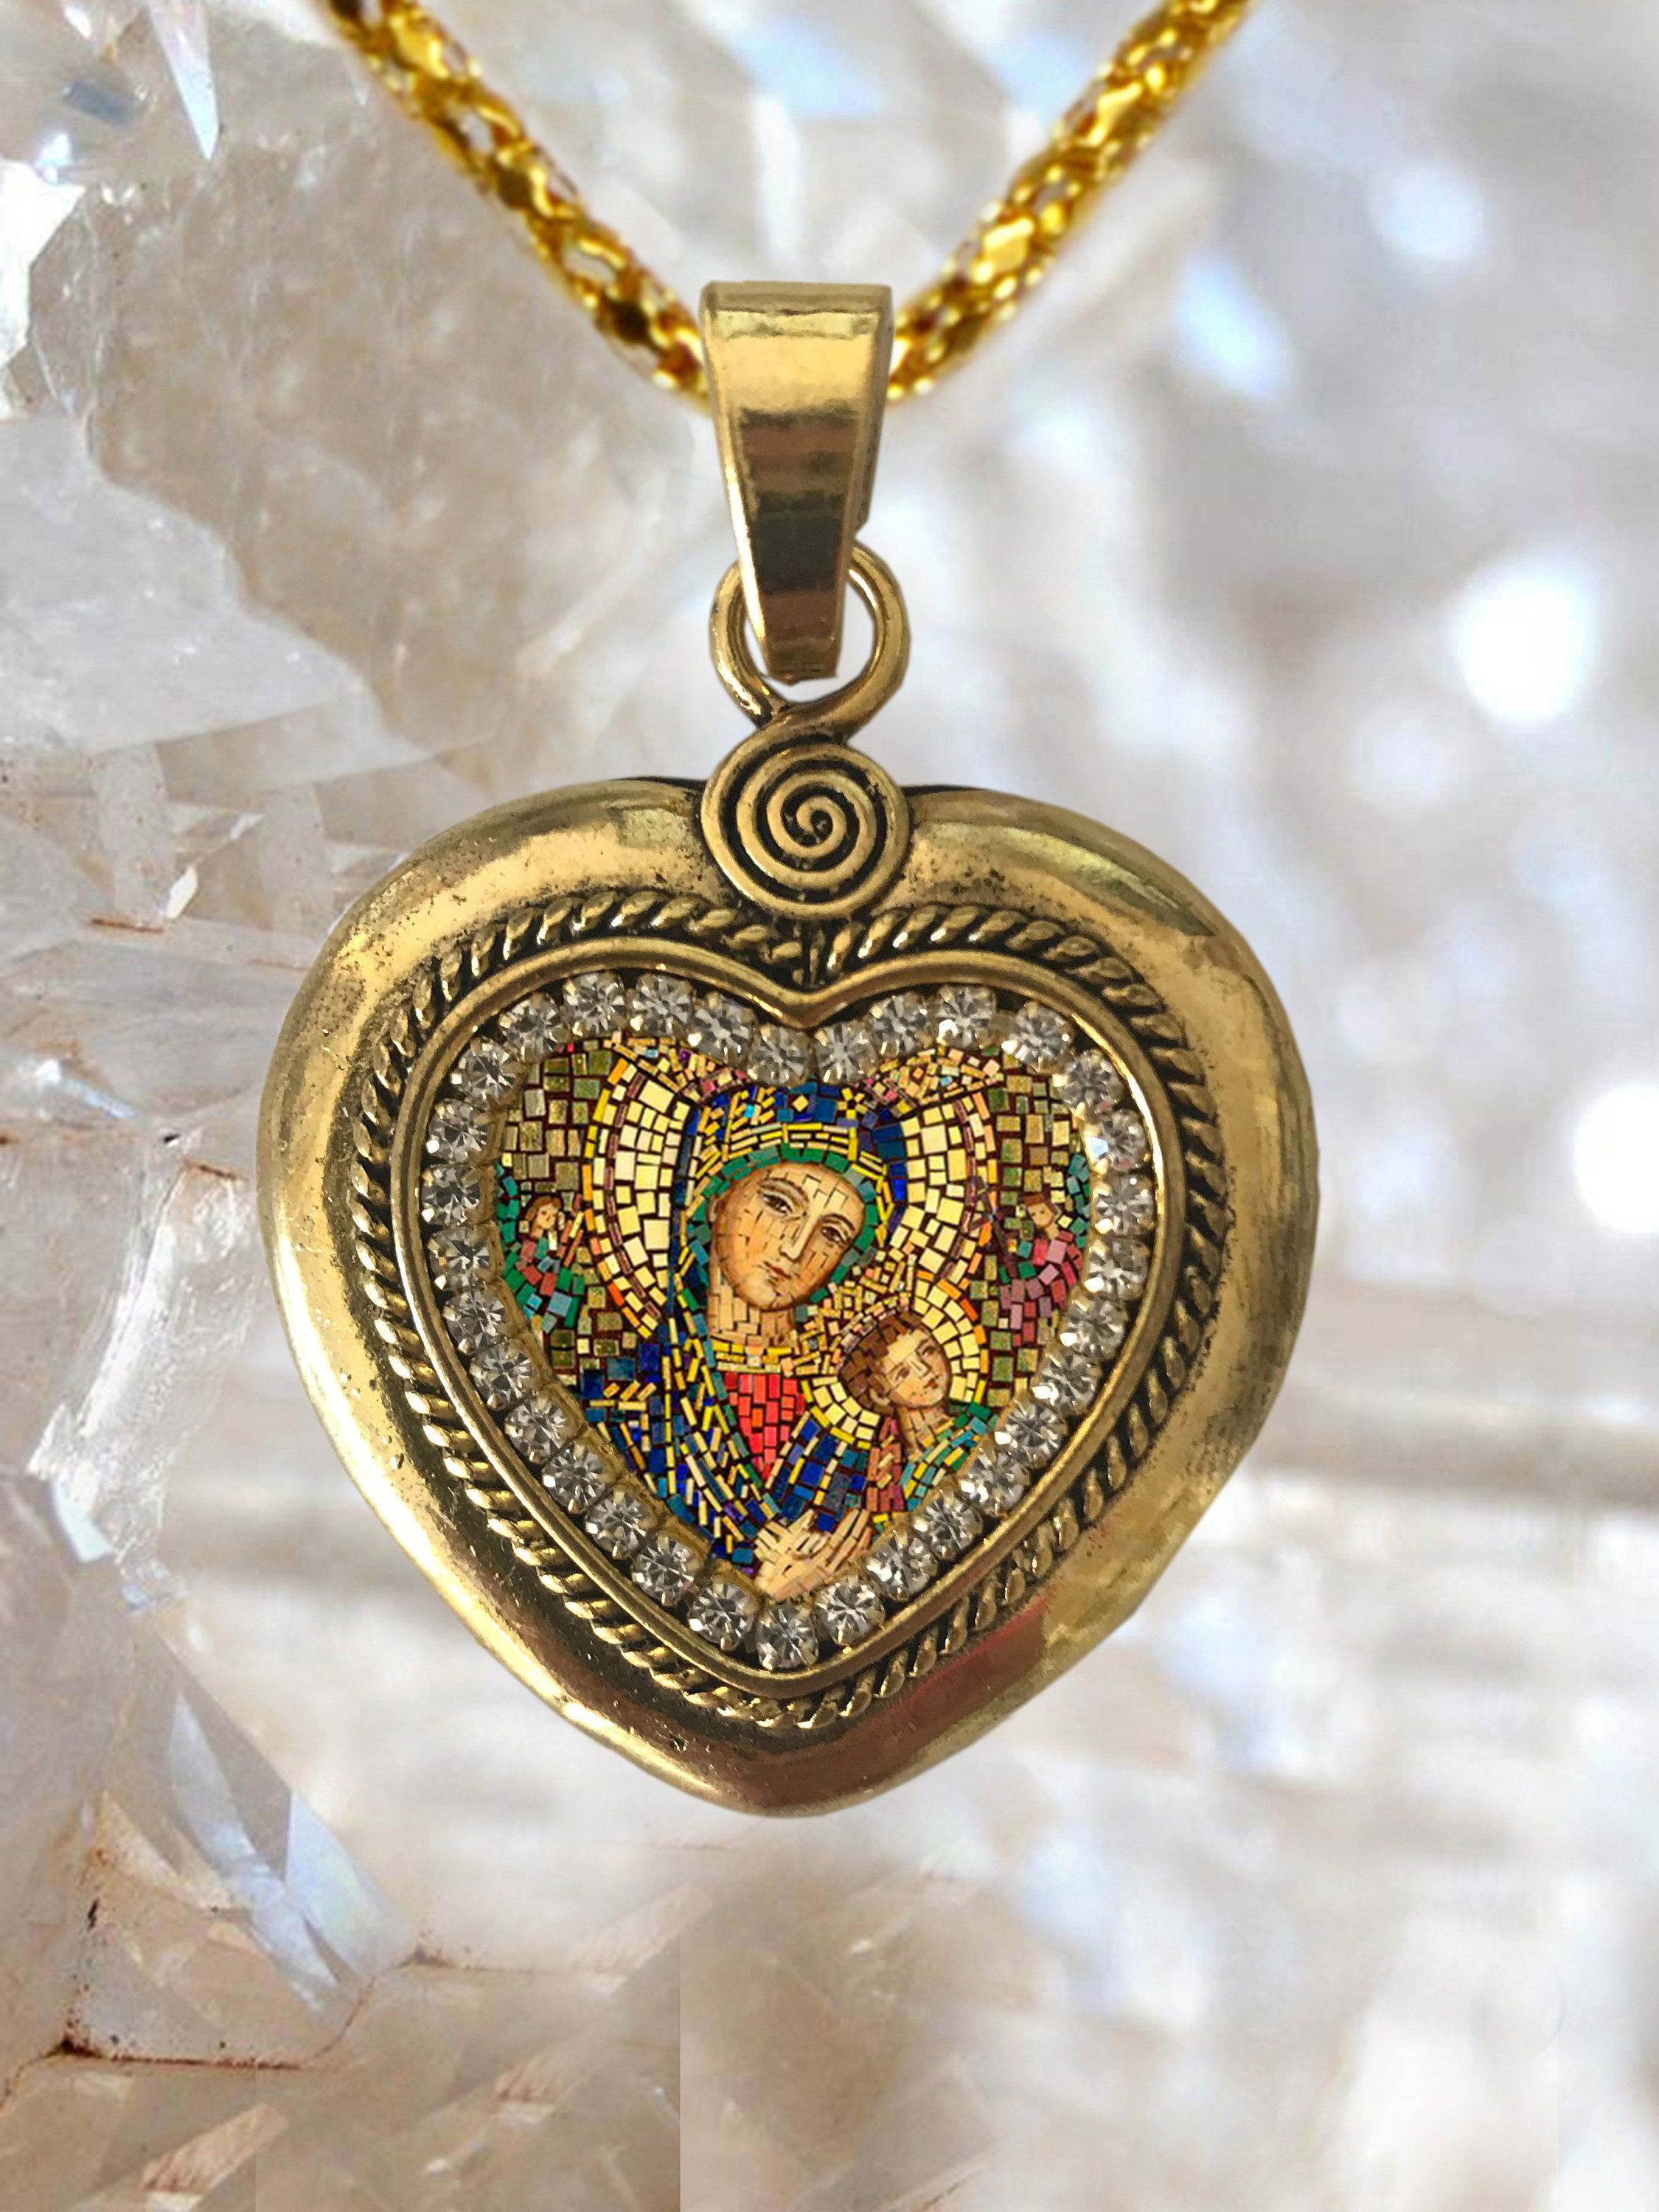 Our Lady of Perpetual Help Heart Necklace Handmade Catholic